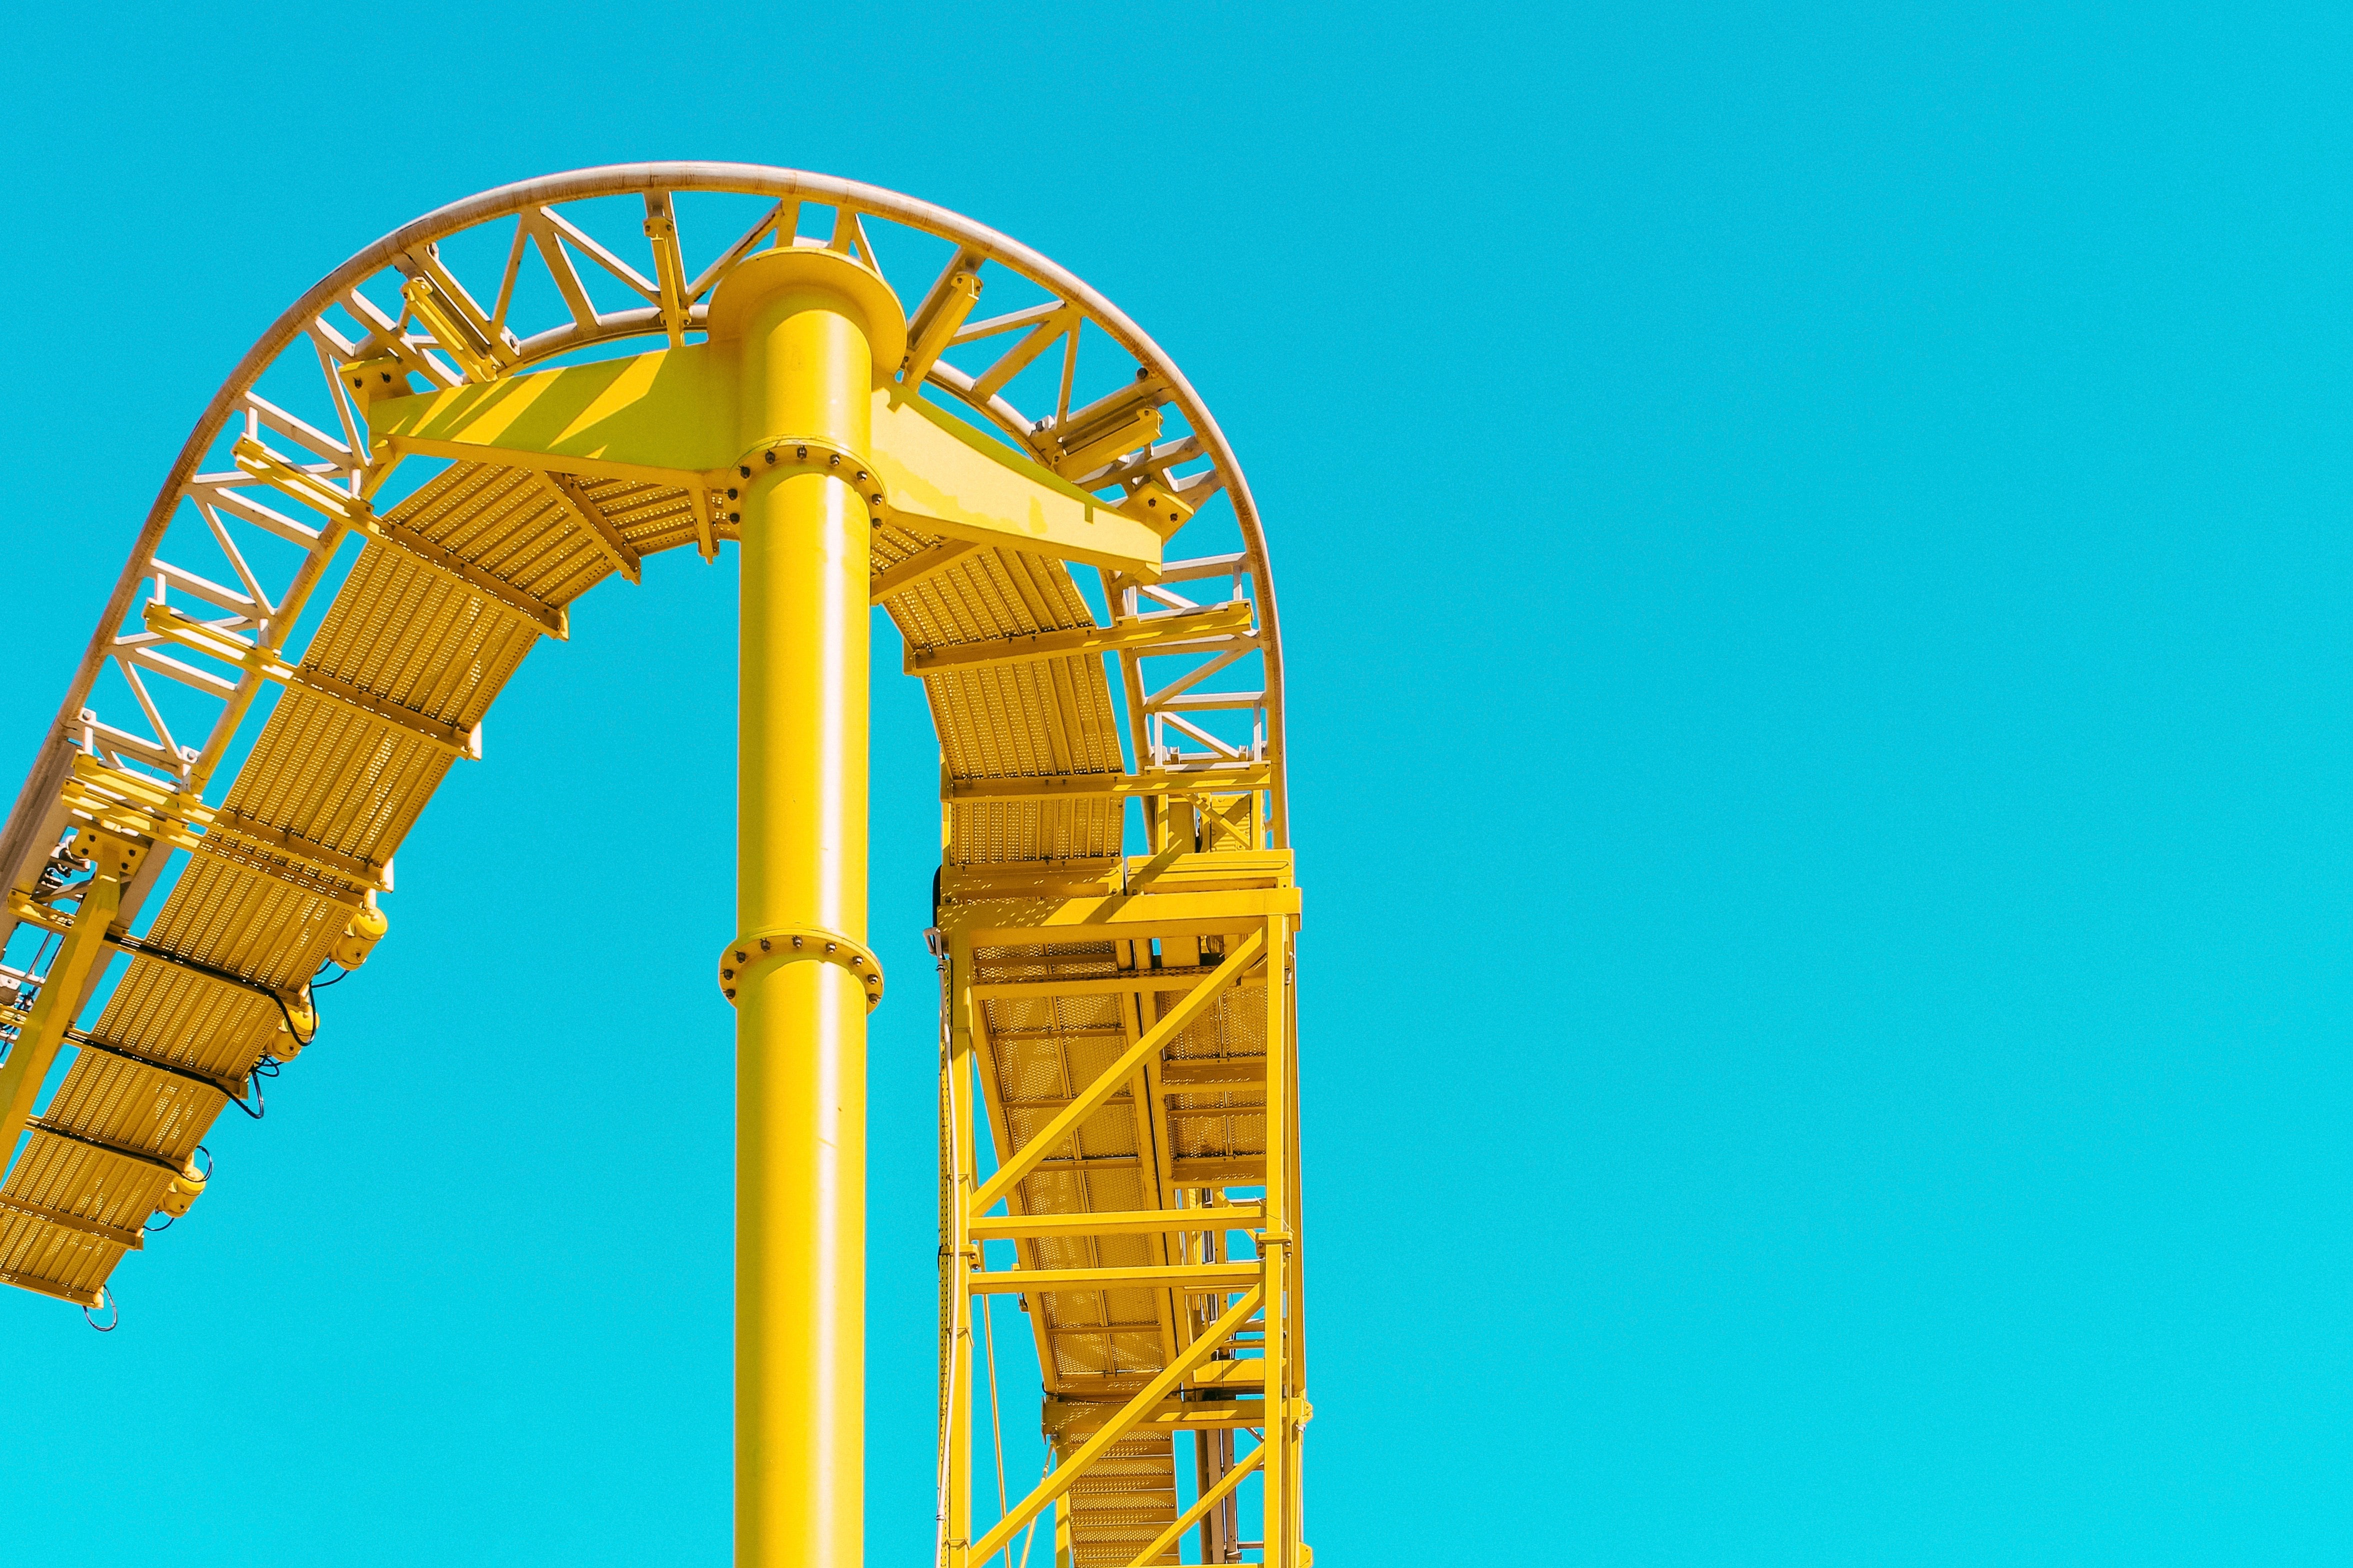 A yellow rollercoaster track in Adler.